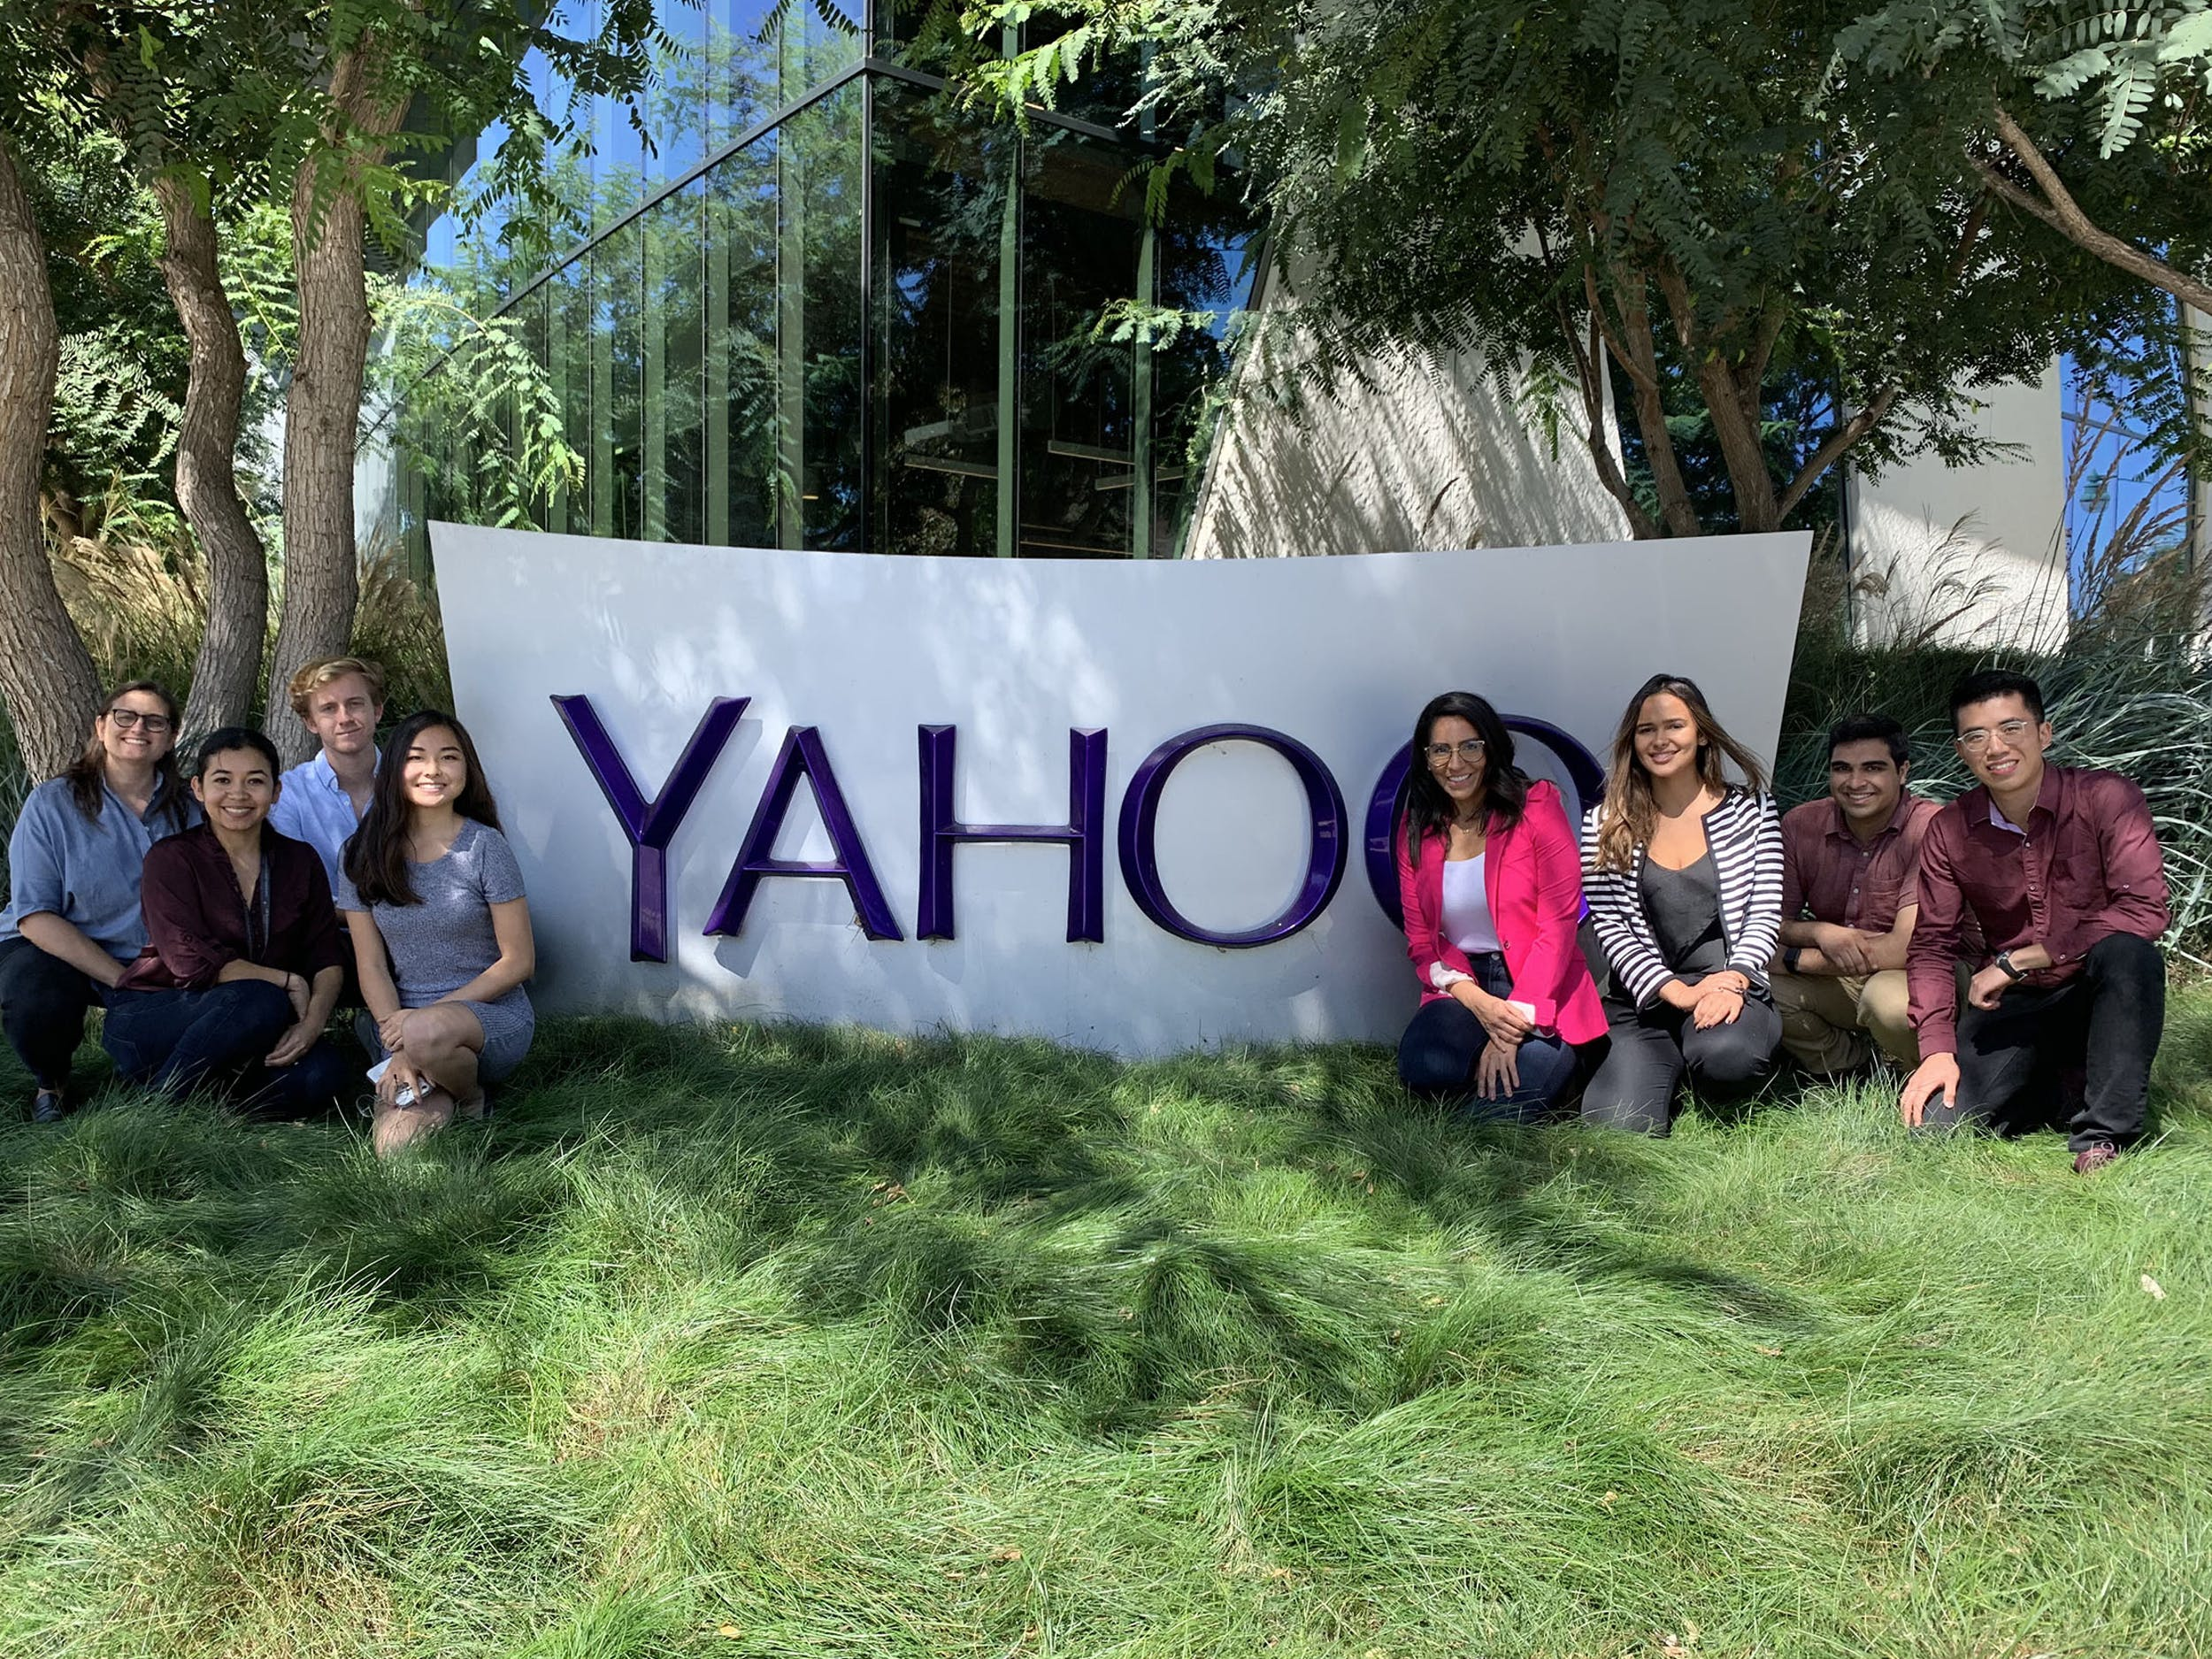 A group of students pose in front of a YAHOO sign